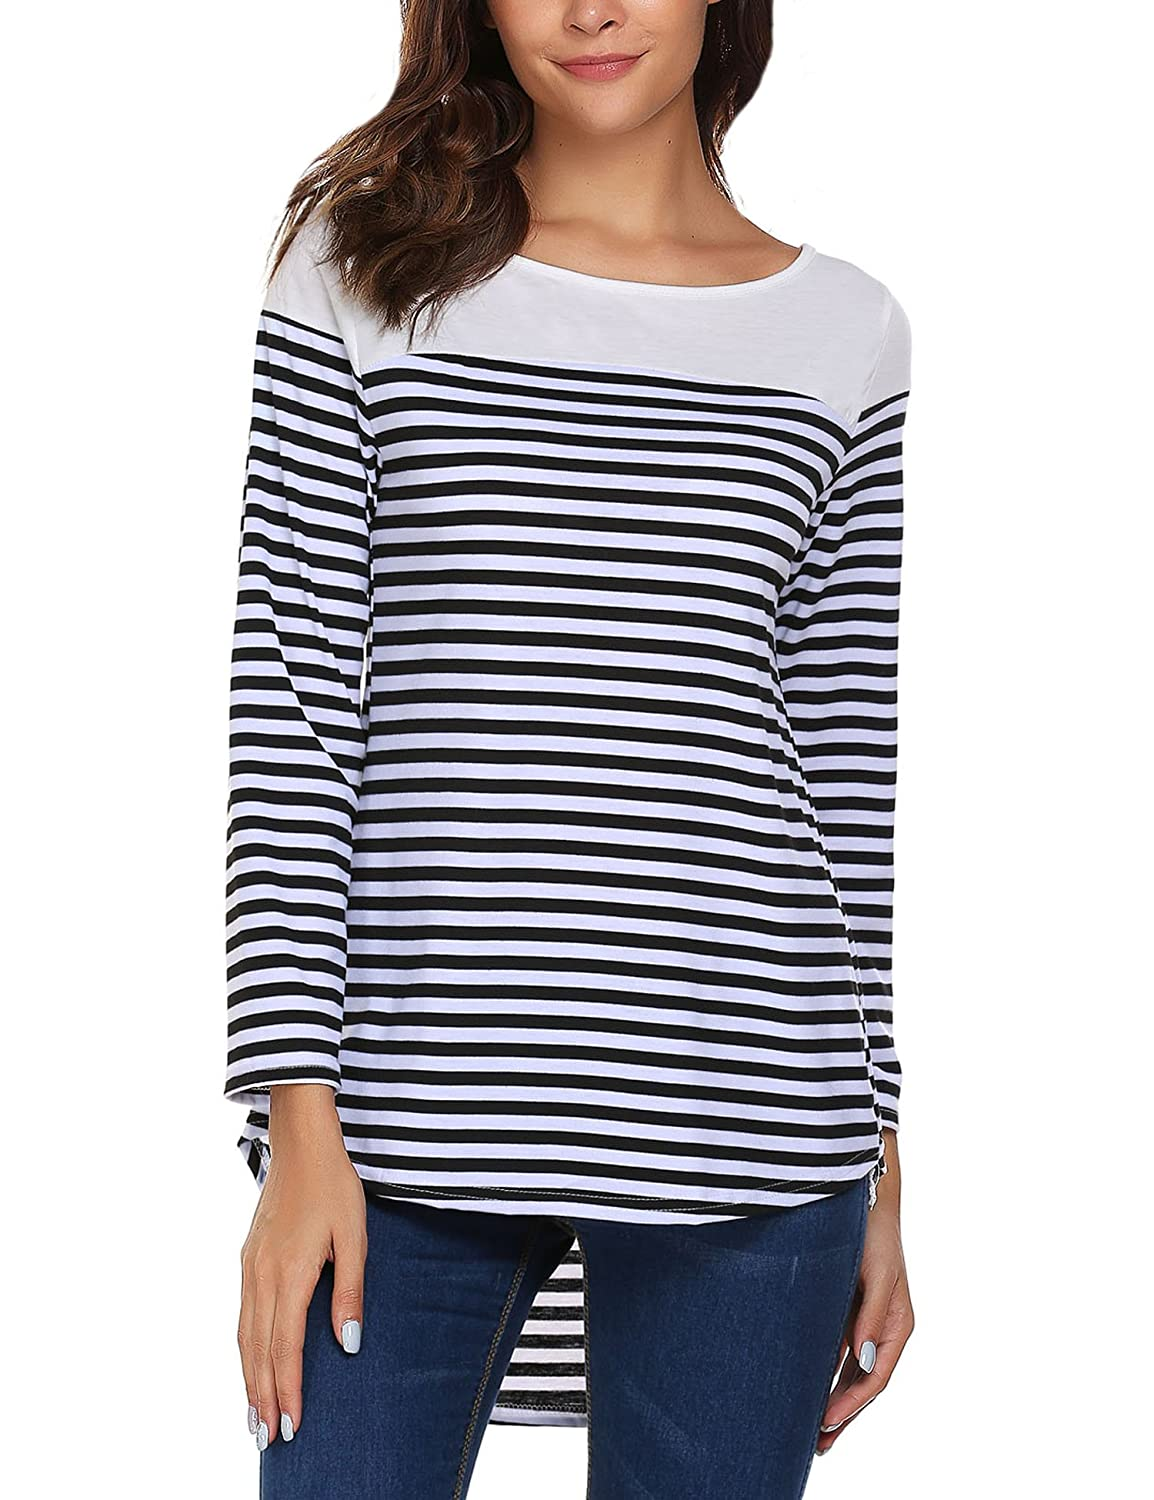 Meaneor Women Striped Blouse Flared Comfy T-Shirt Long Sleeve Tunic